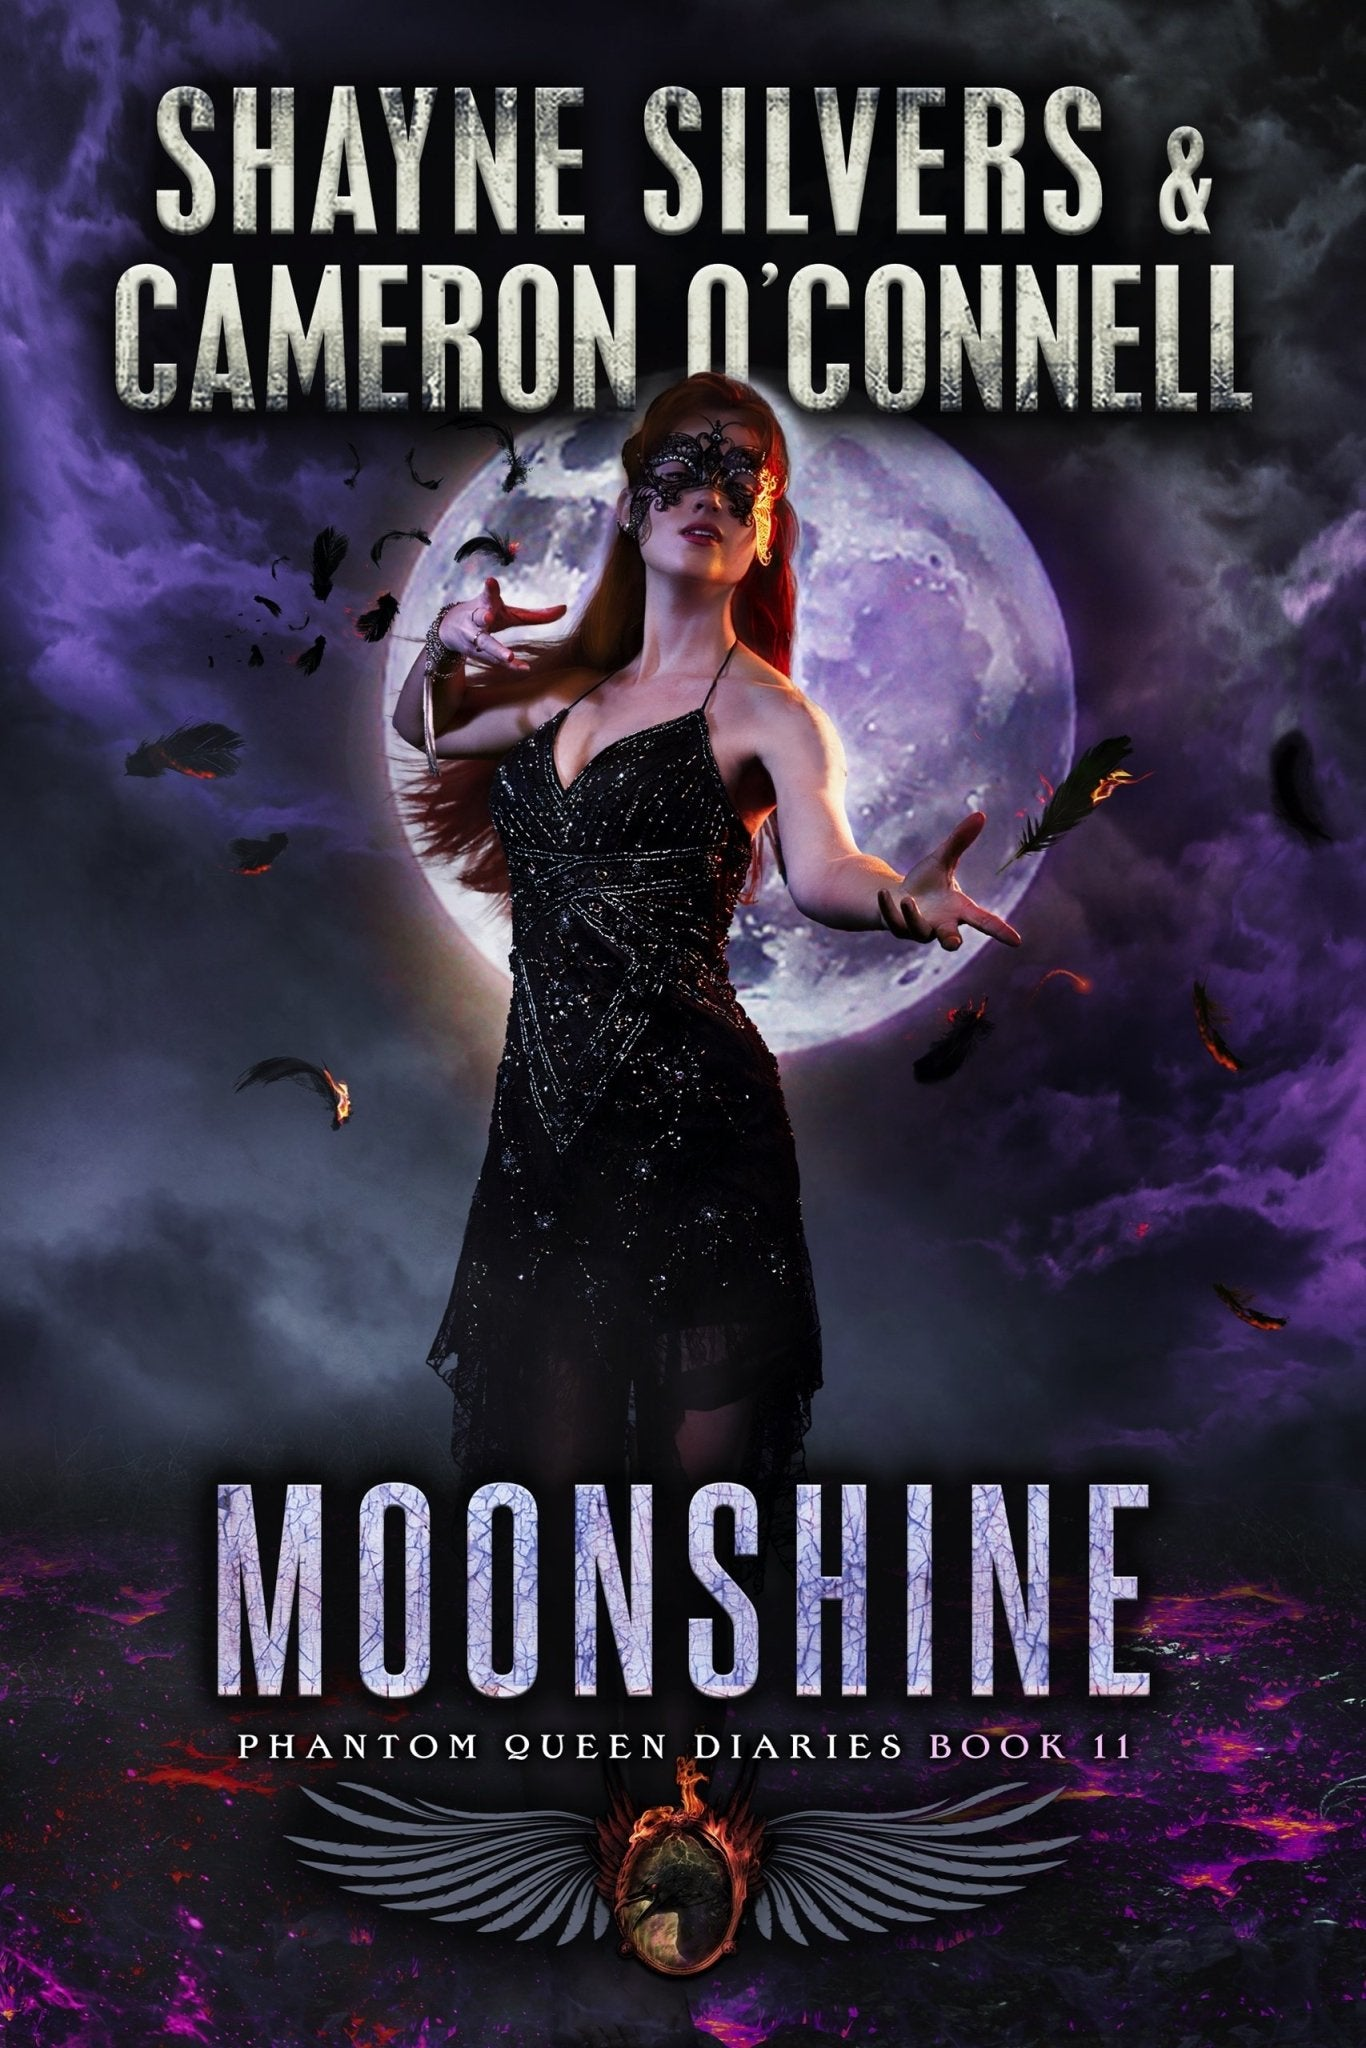 Moonshine: The Phantom Queen Diaries Book 11 - A Temple Verse Series (Signed Paperback) - Temple Verse Gear